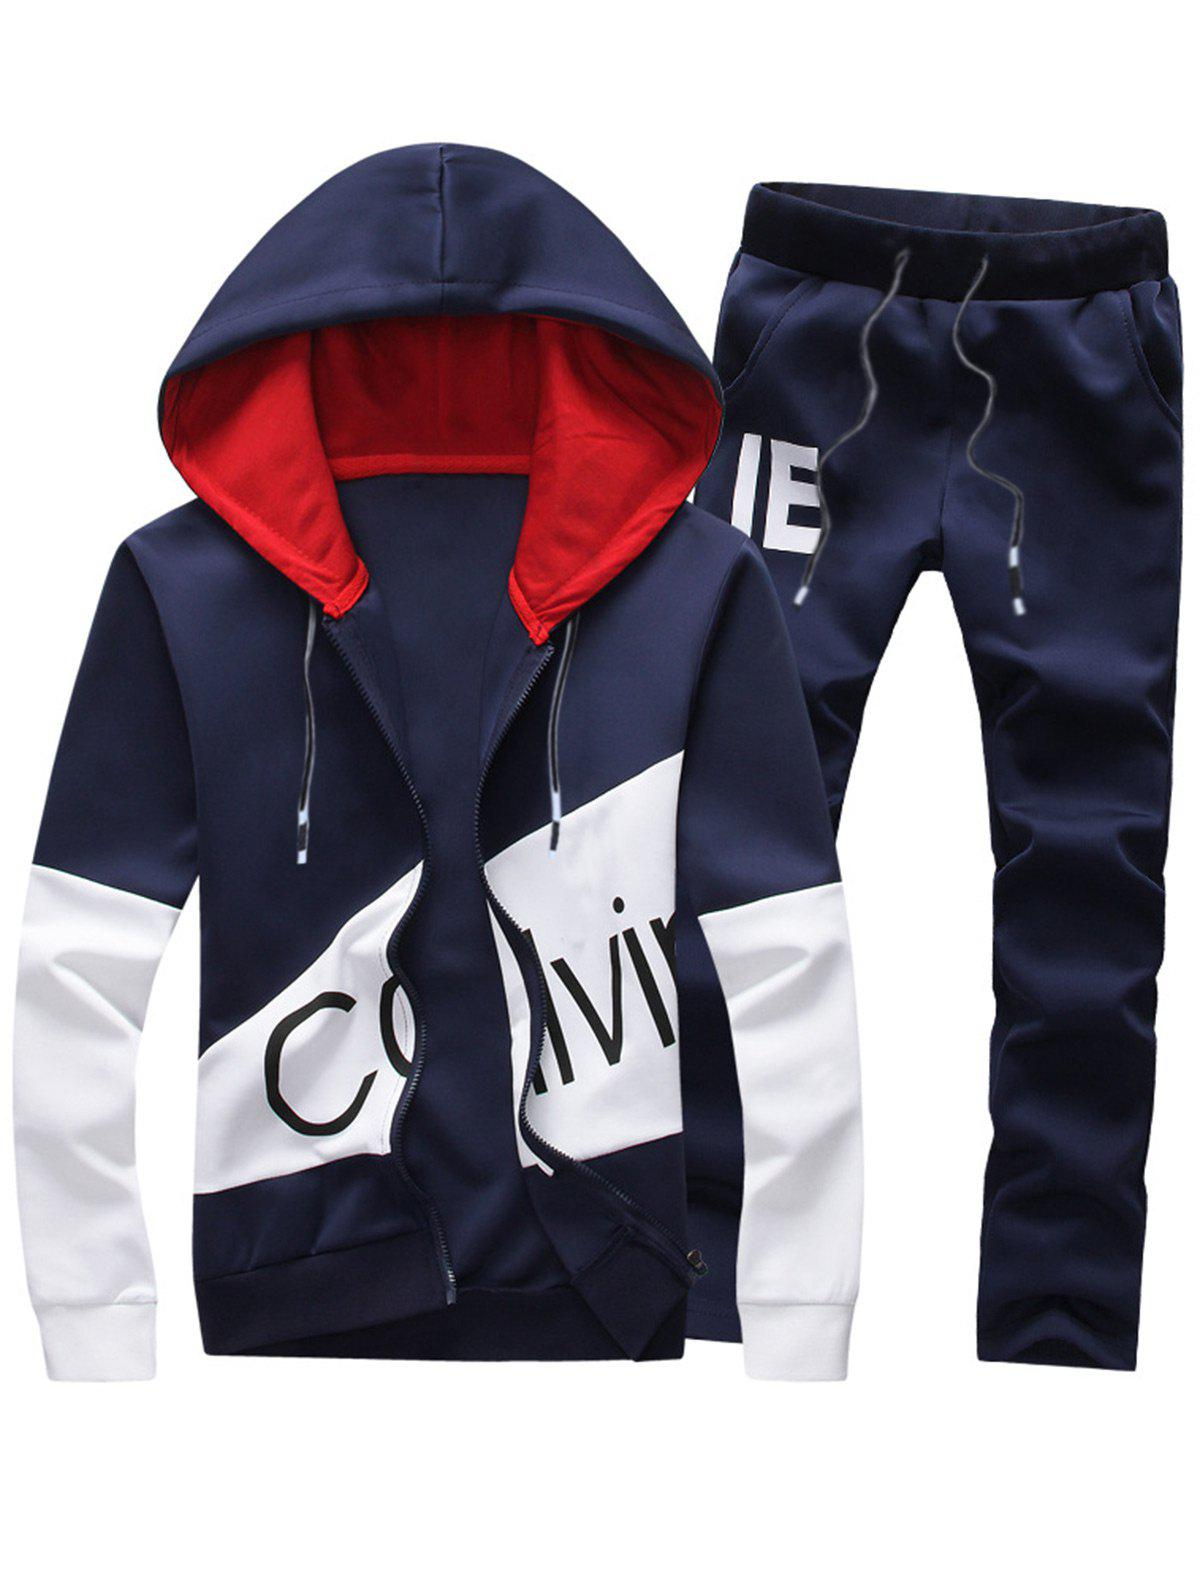 Graphic Color Block Panel Hoodie and Pants TwinsetMEN<br><br>Size: 2XL; Color: PURPLISH BLUE; Material: Cotton,Polyester; Shirt Length: Regular; Sleeve Length: Full; Style: Fashion; Weight: 0.9230kg; Package Contents: 1 x Hoodie  1 x Pants;